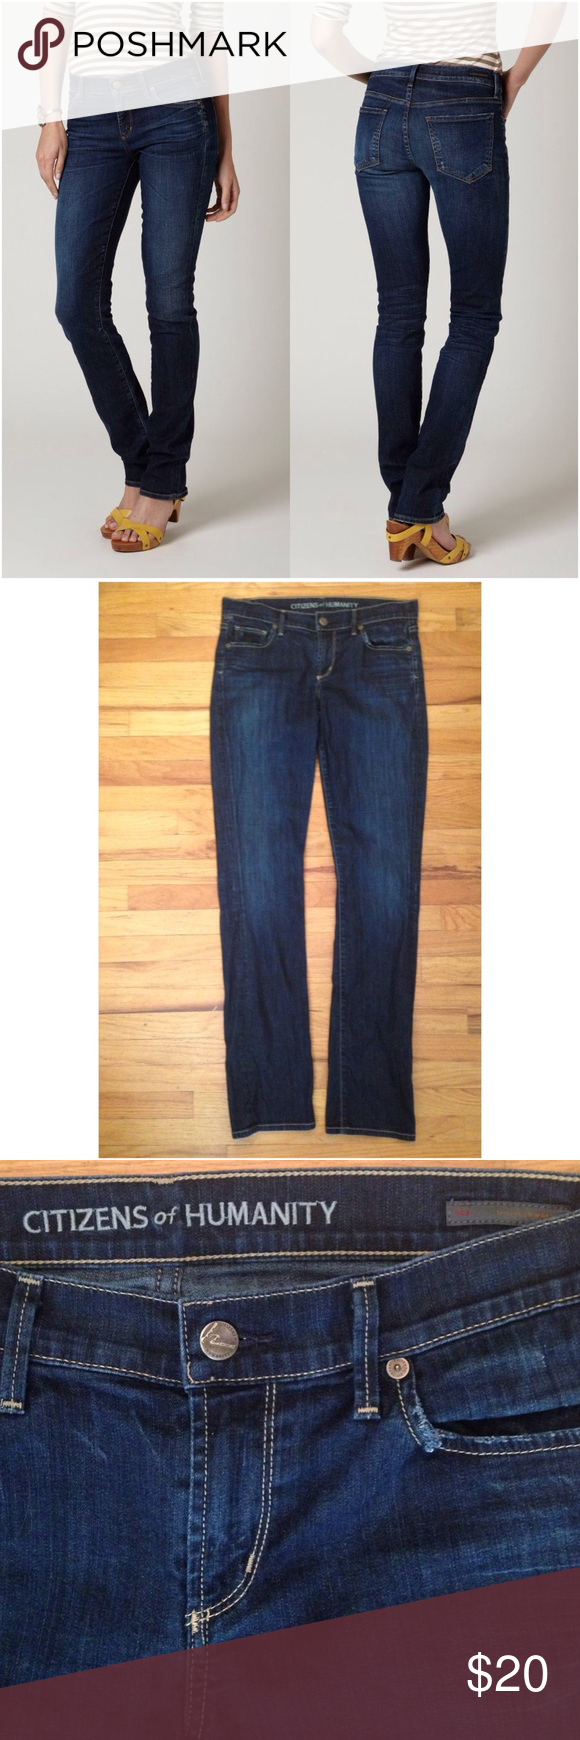 Citizens of Humanity Ava Low Rise Straight Leg Citizens of Humanity Ava Low Rise Straight Leg. 98% cotton, 2% spandex. Some distressing on back of bottom hems as shown in last image. Otherwise in great condition. Anthropologie Jeans Straight Leg